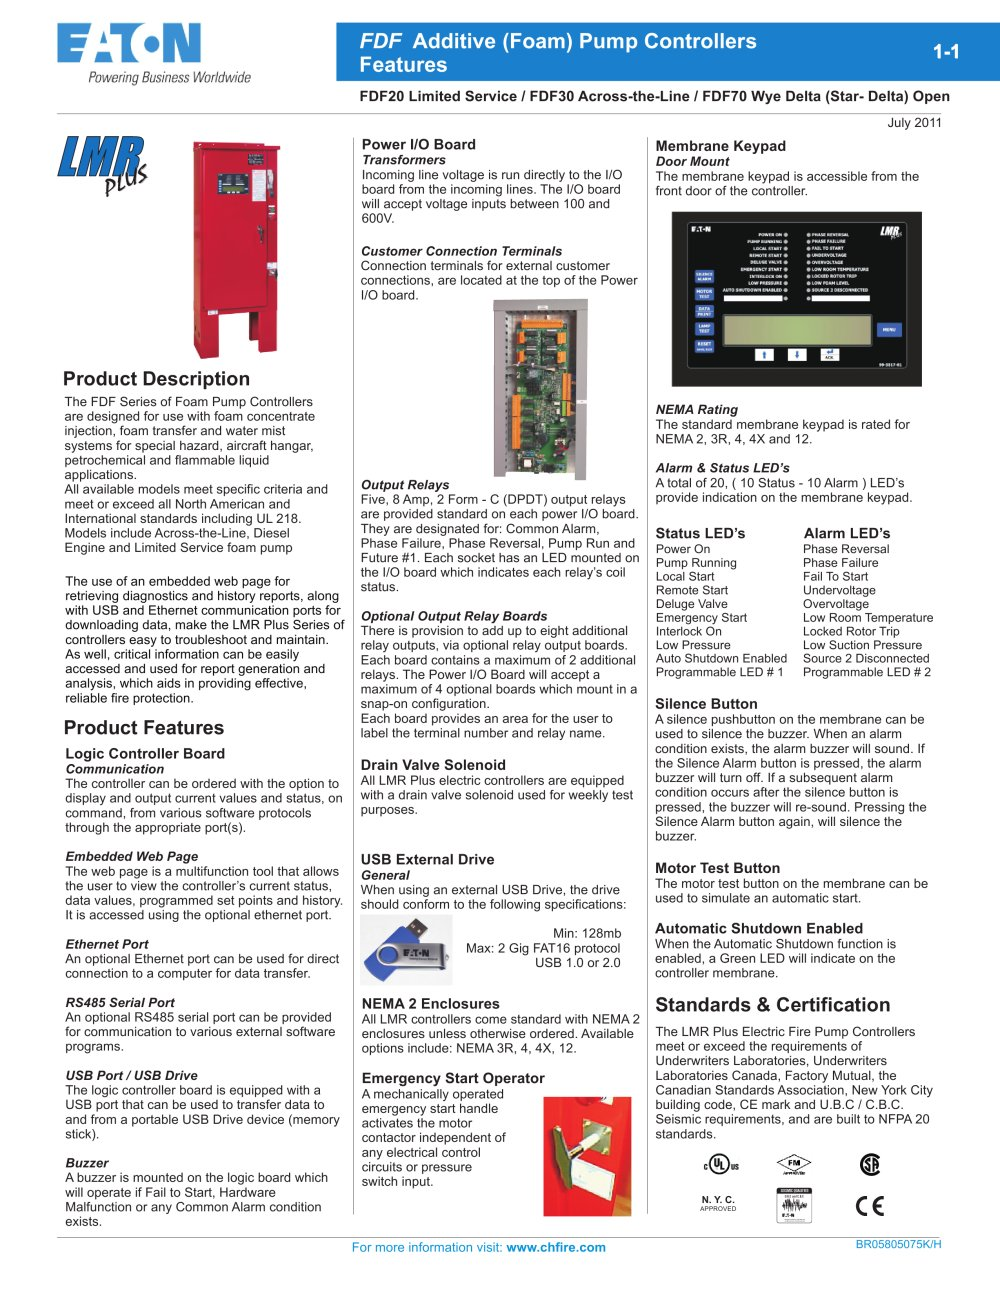 Fdf20 Limited Service Additive Foam Pump Controllers Cutler Mem Contactor Wiring Diagram 1 4 Pages